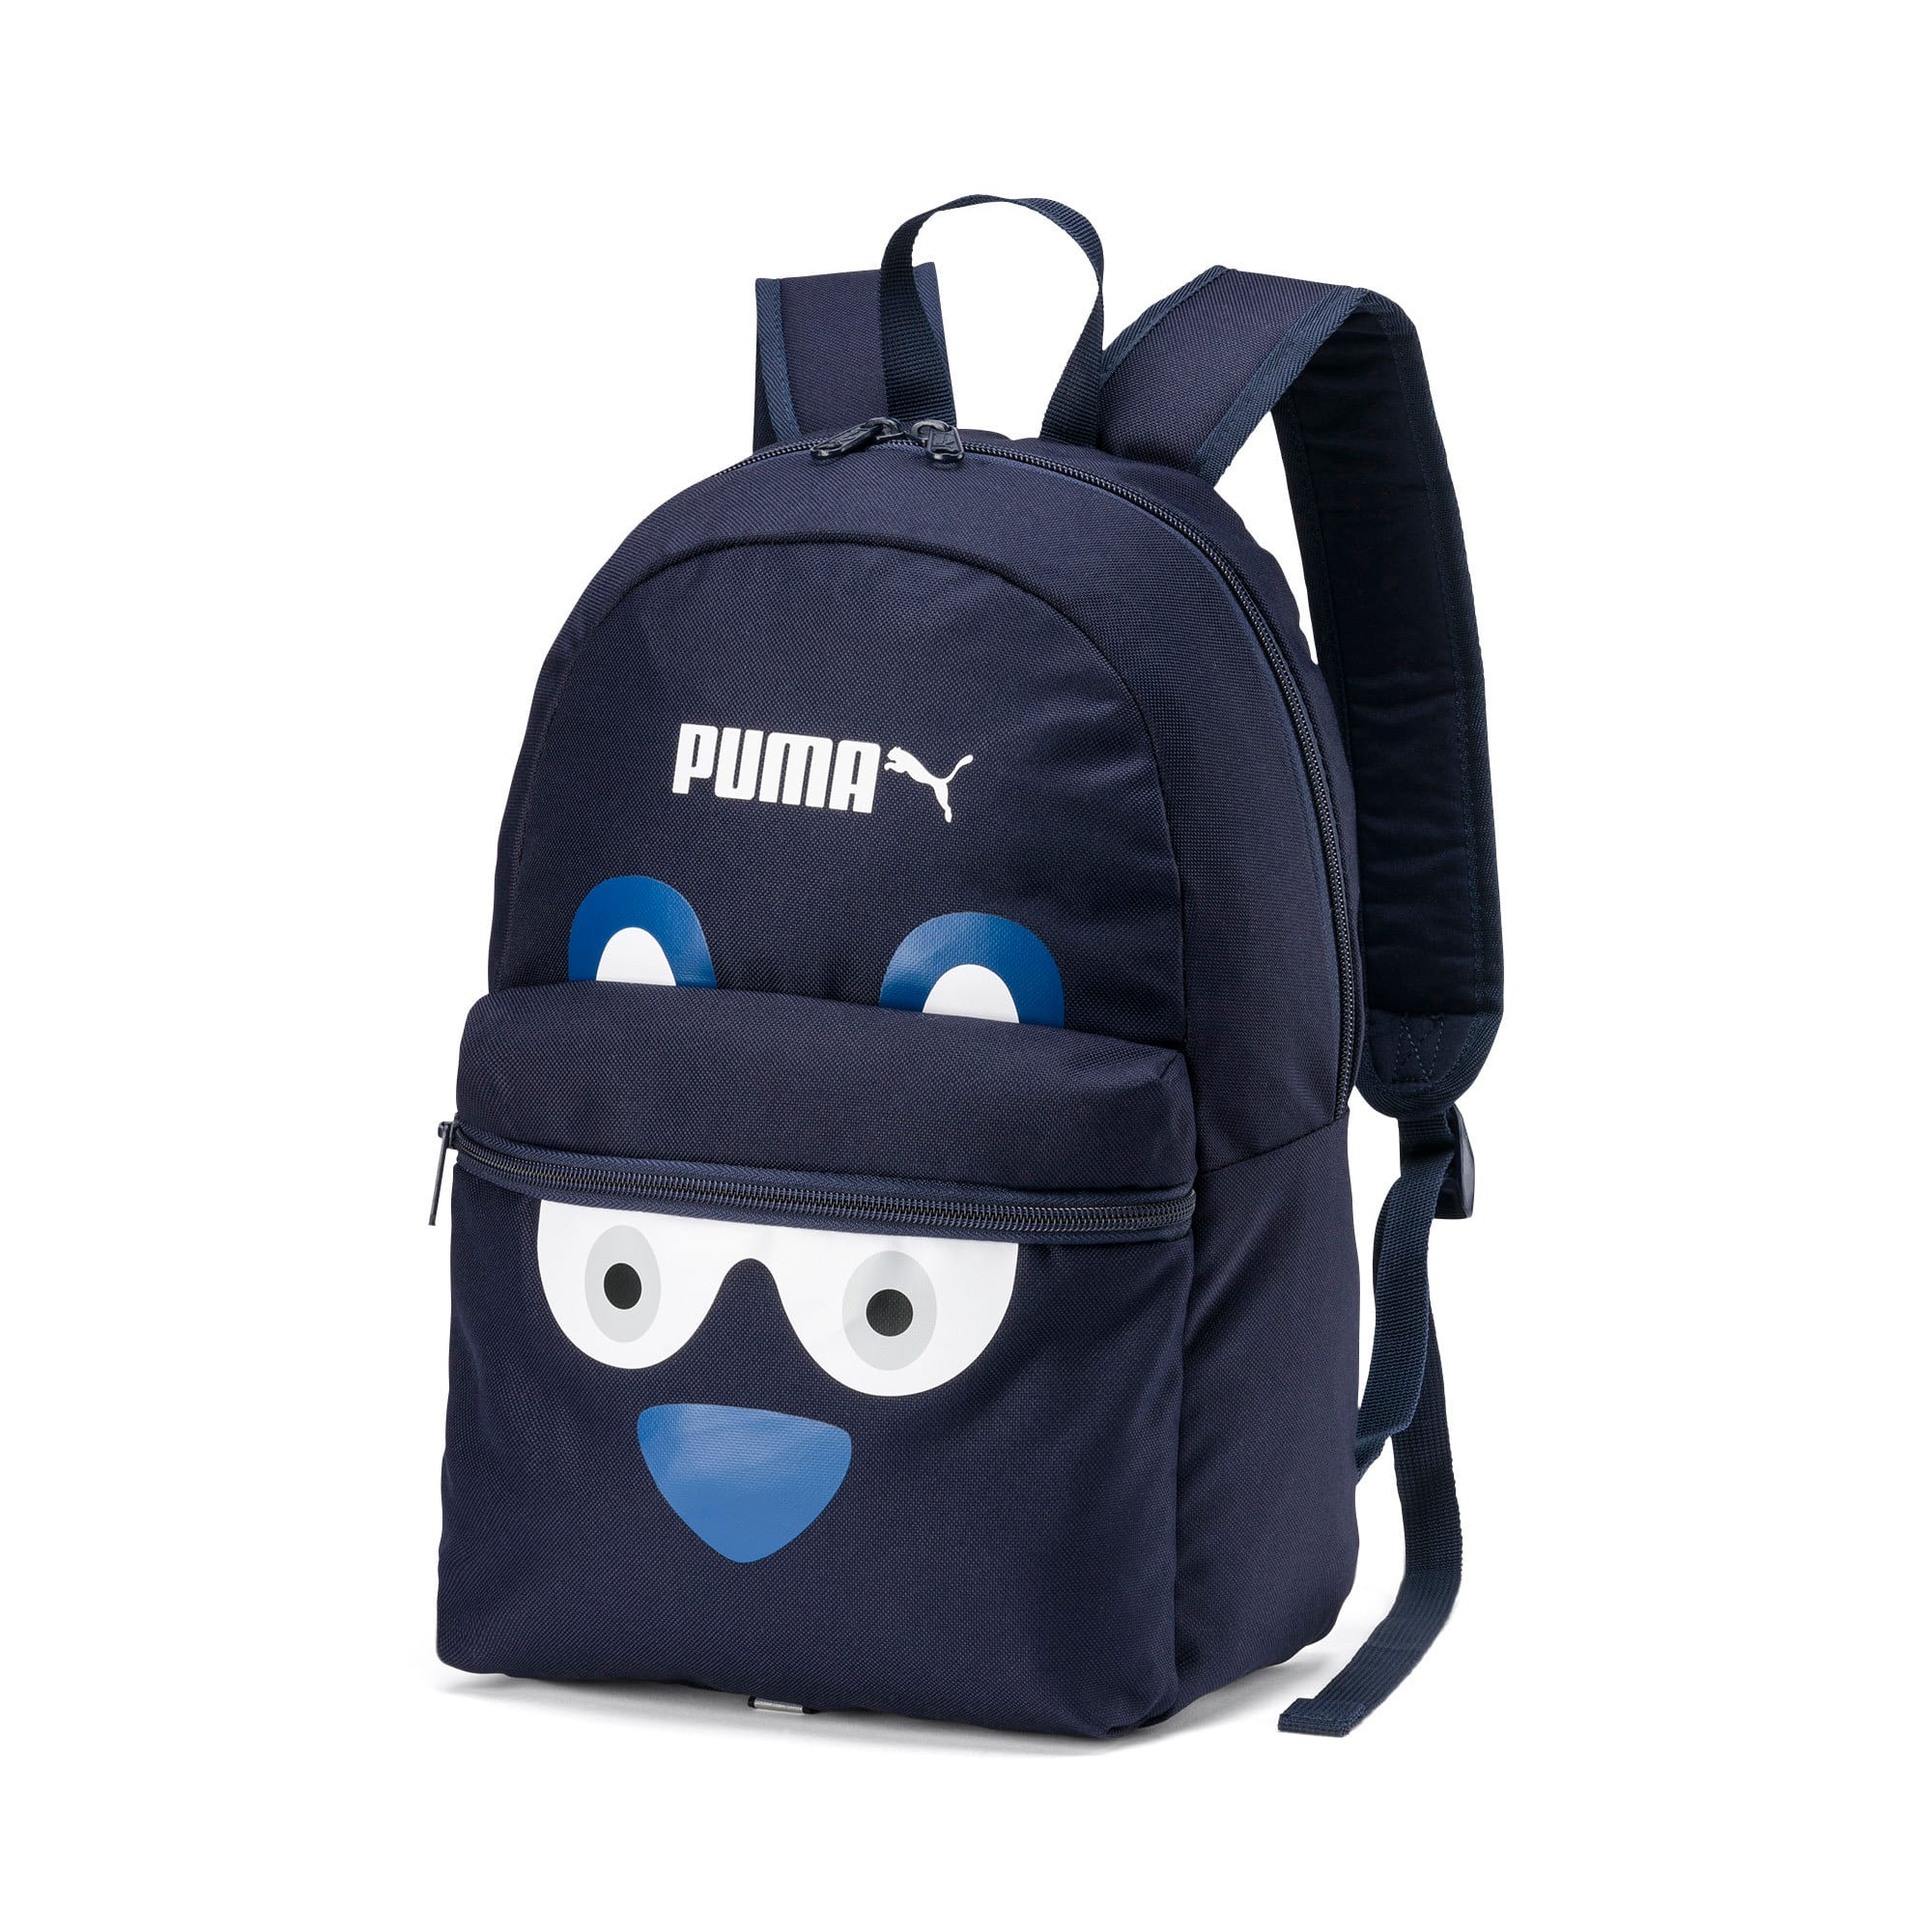 Thumbnail 1 of PUMA Monster Backpack, Peacoat, medium